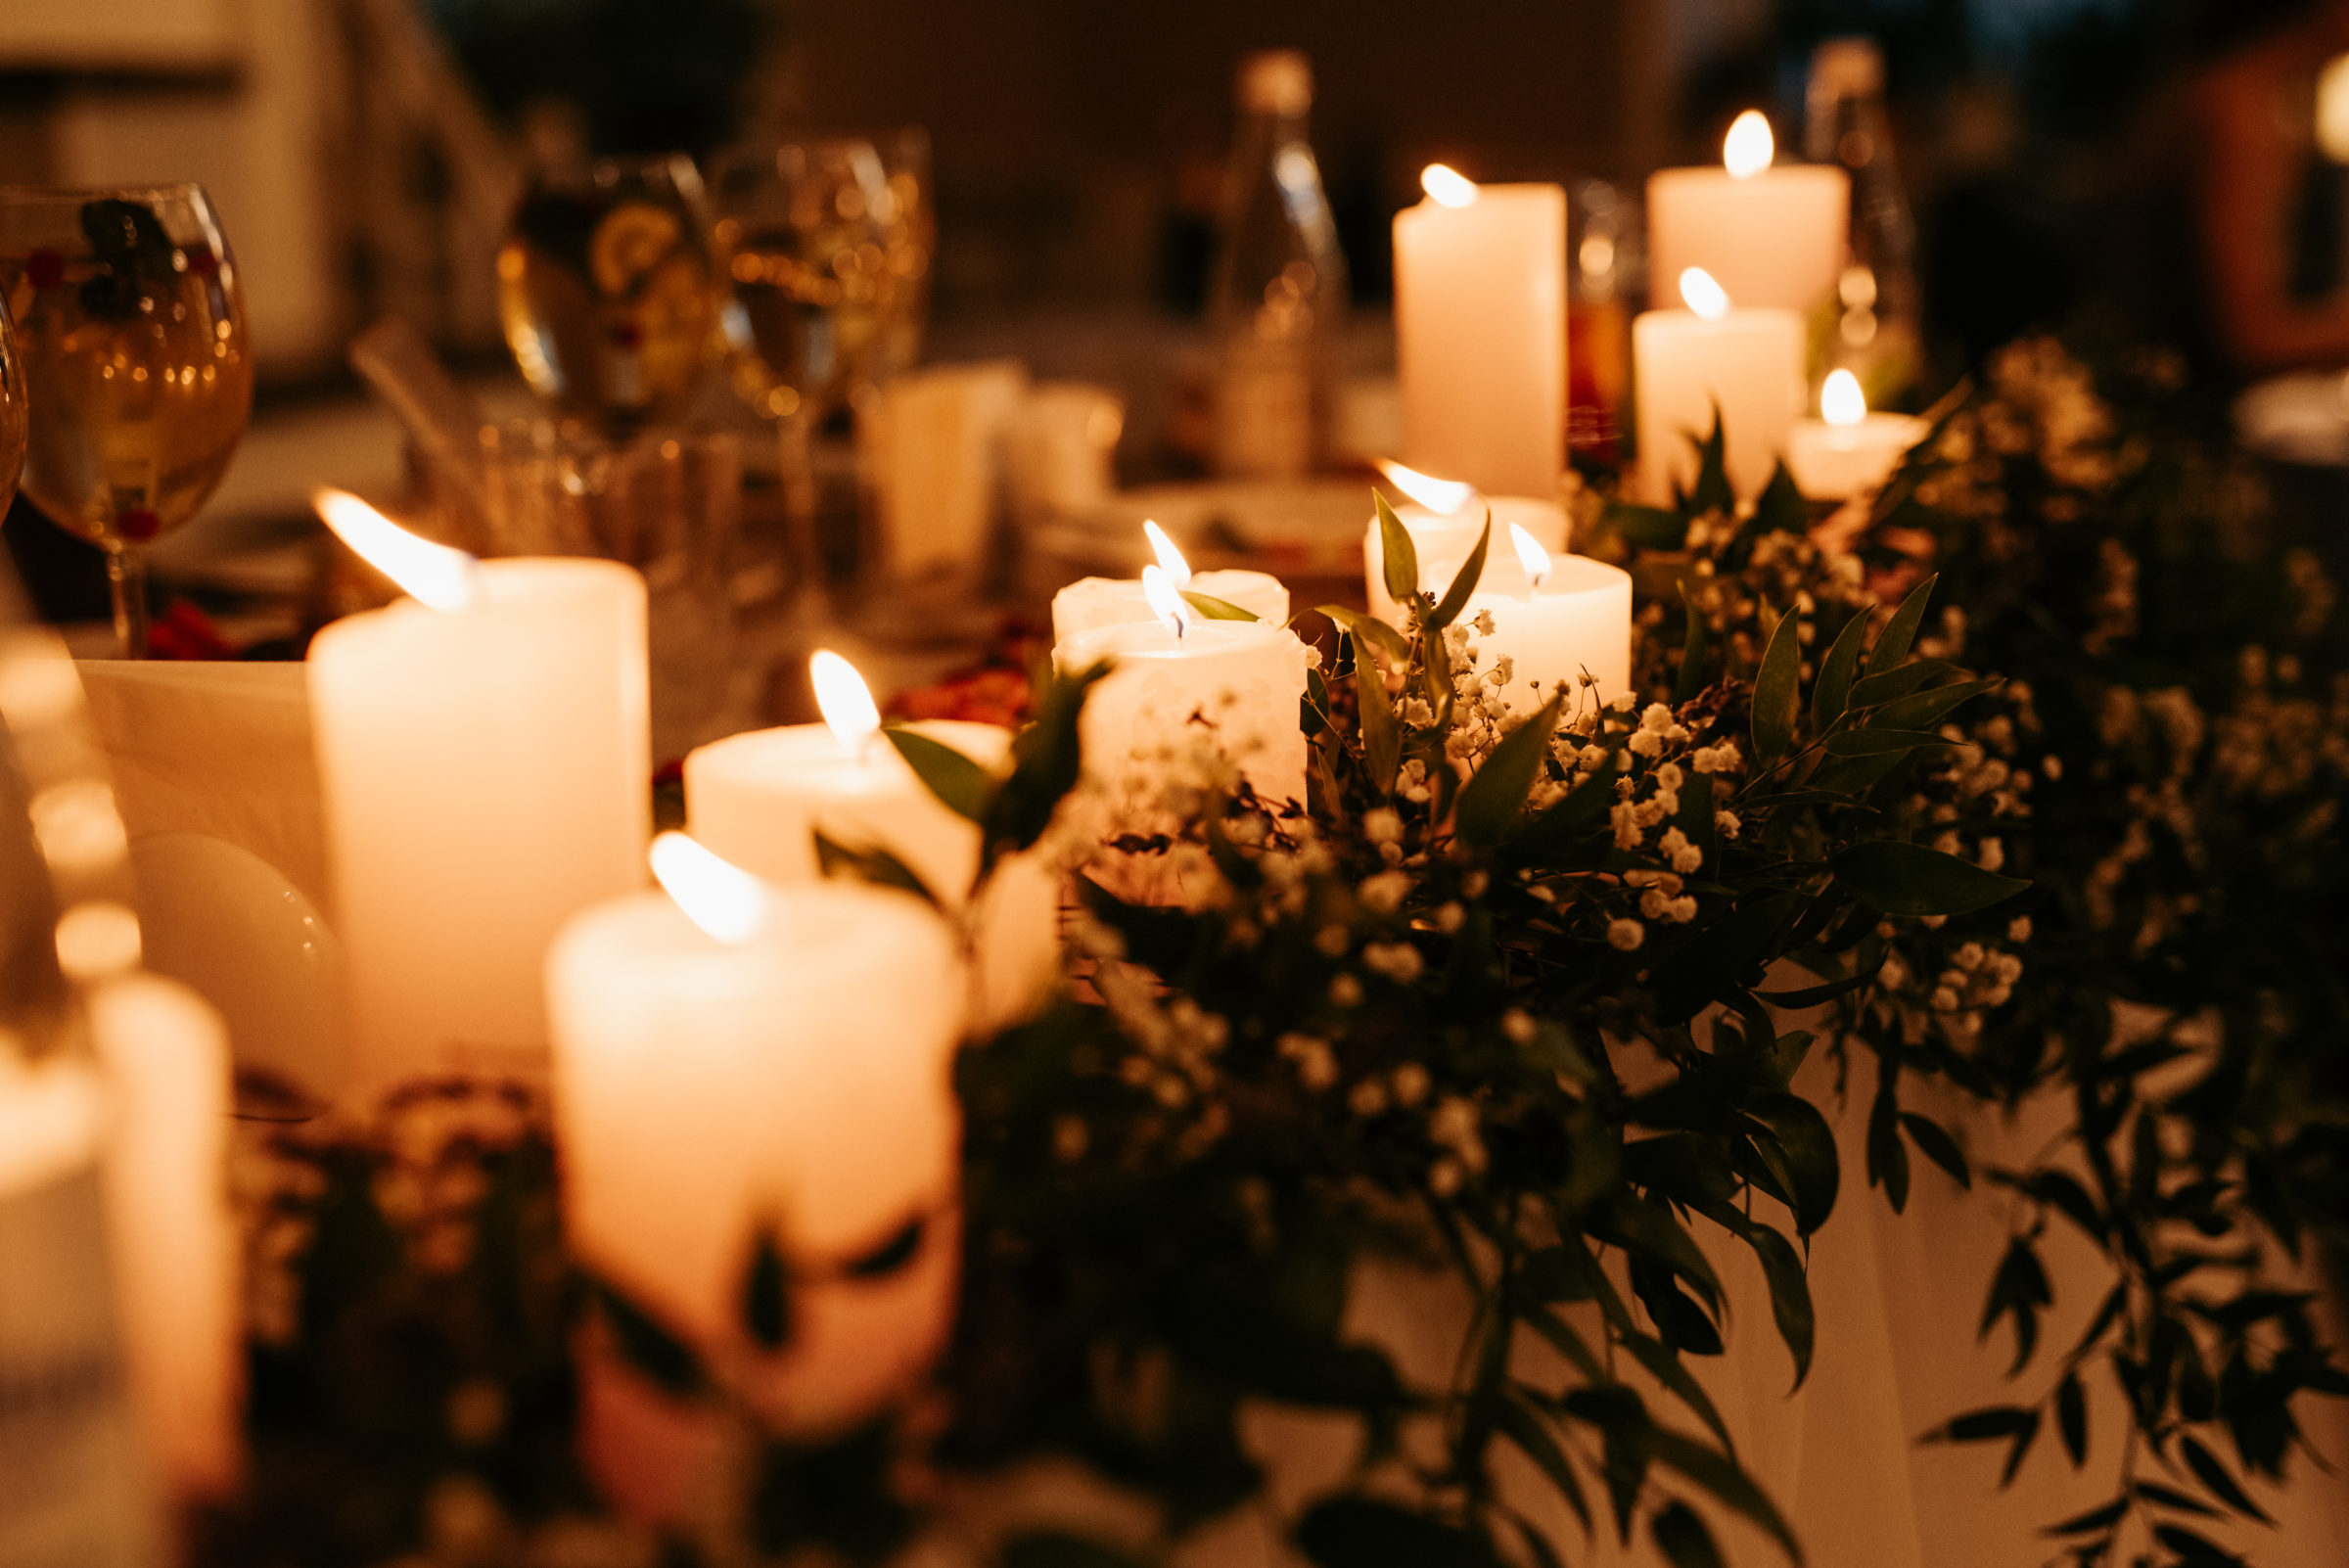 festive traditional candles on table CE5GU7T